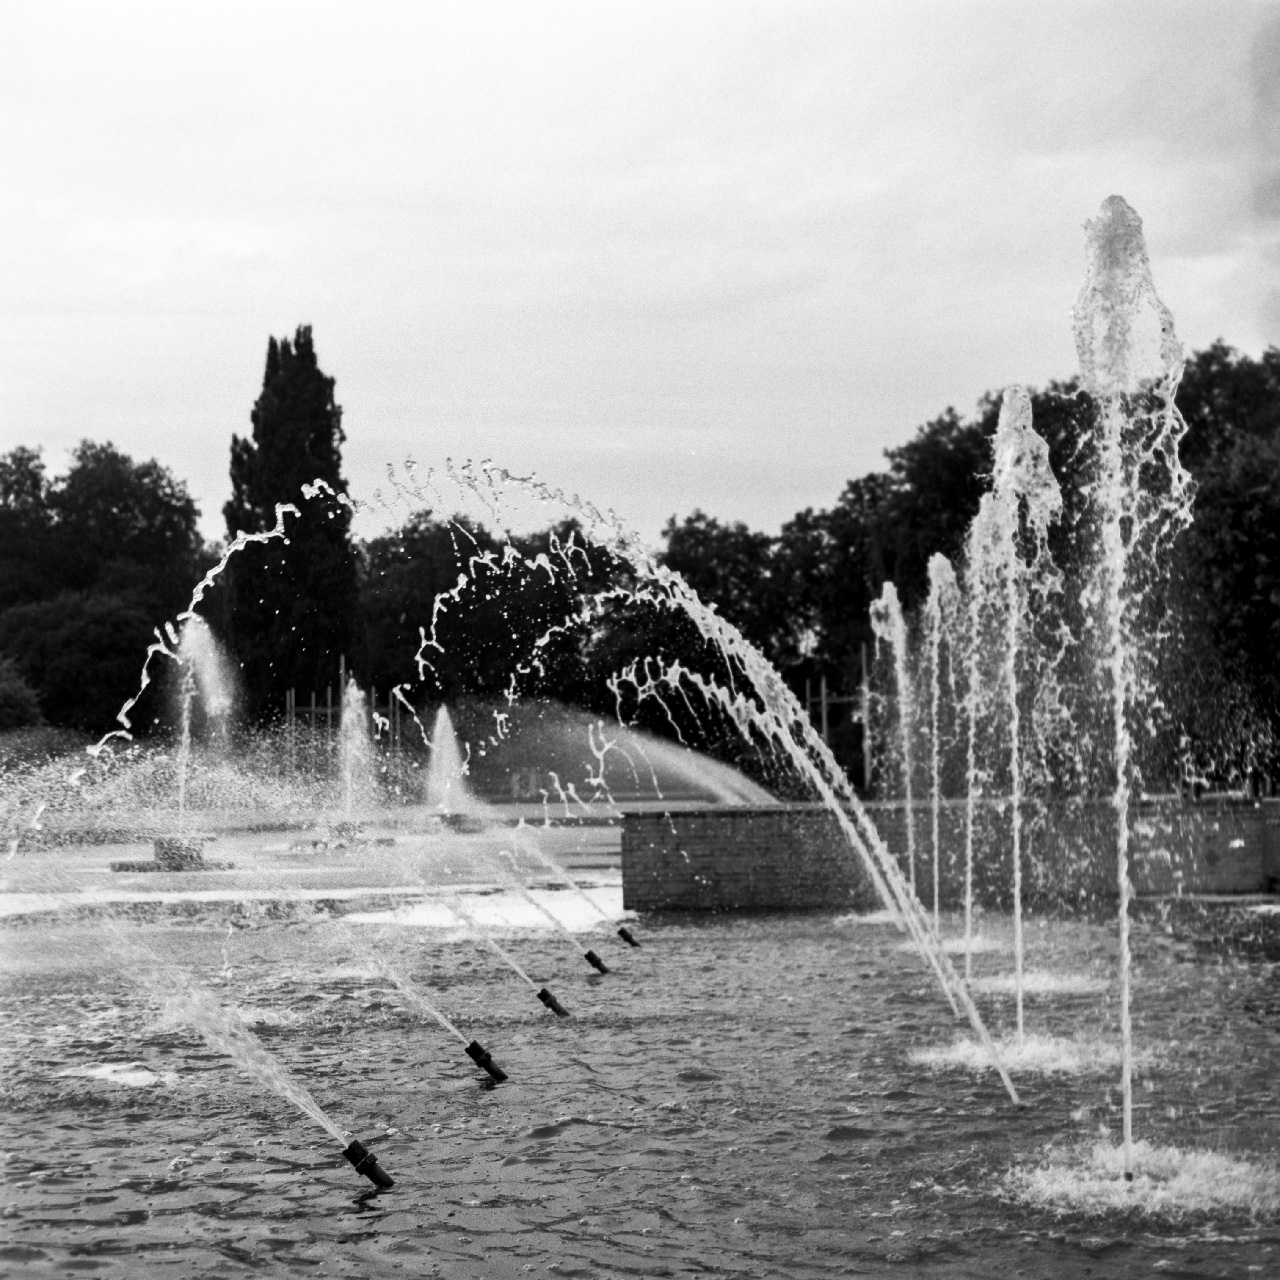 Water pool at Battersea park